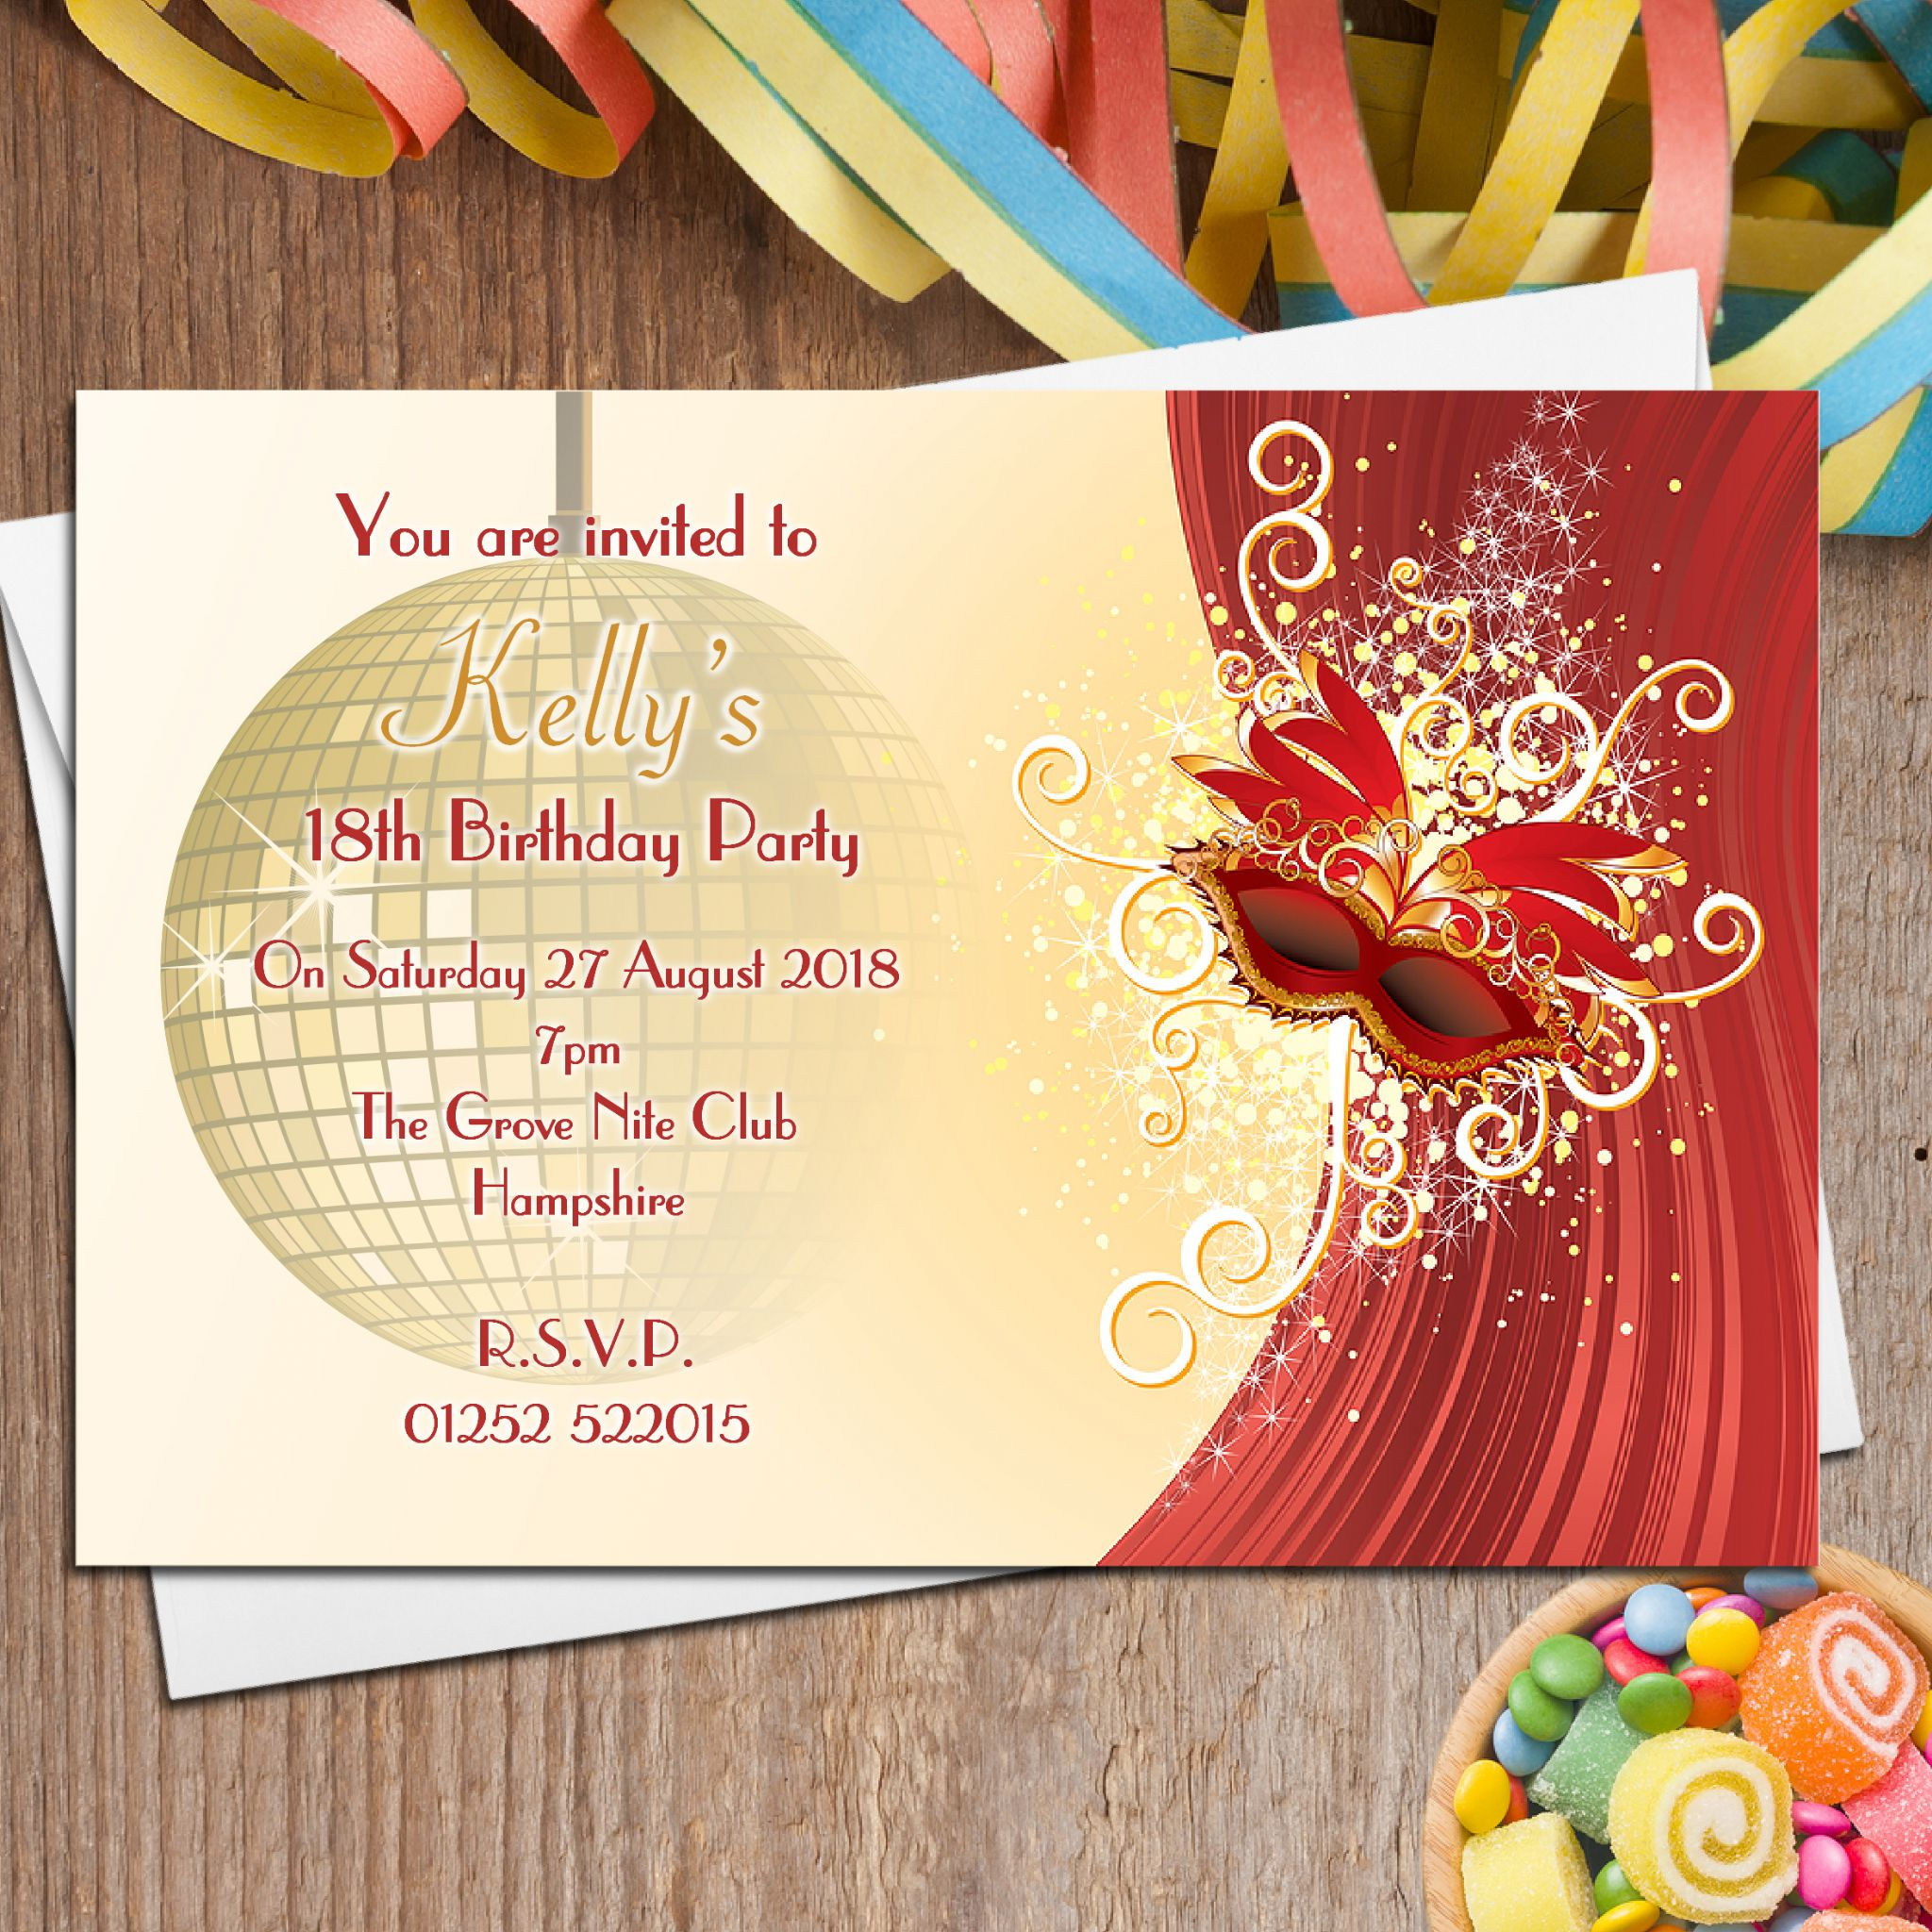 Masquerade Wedding Invitation Wording